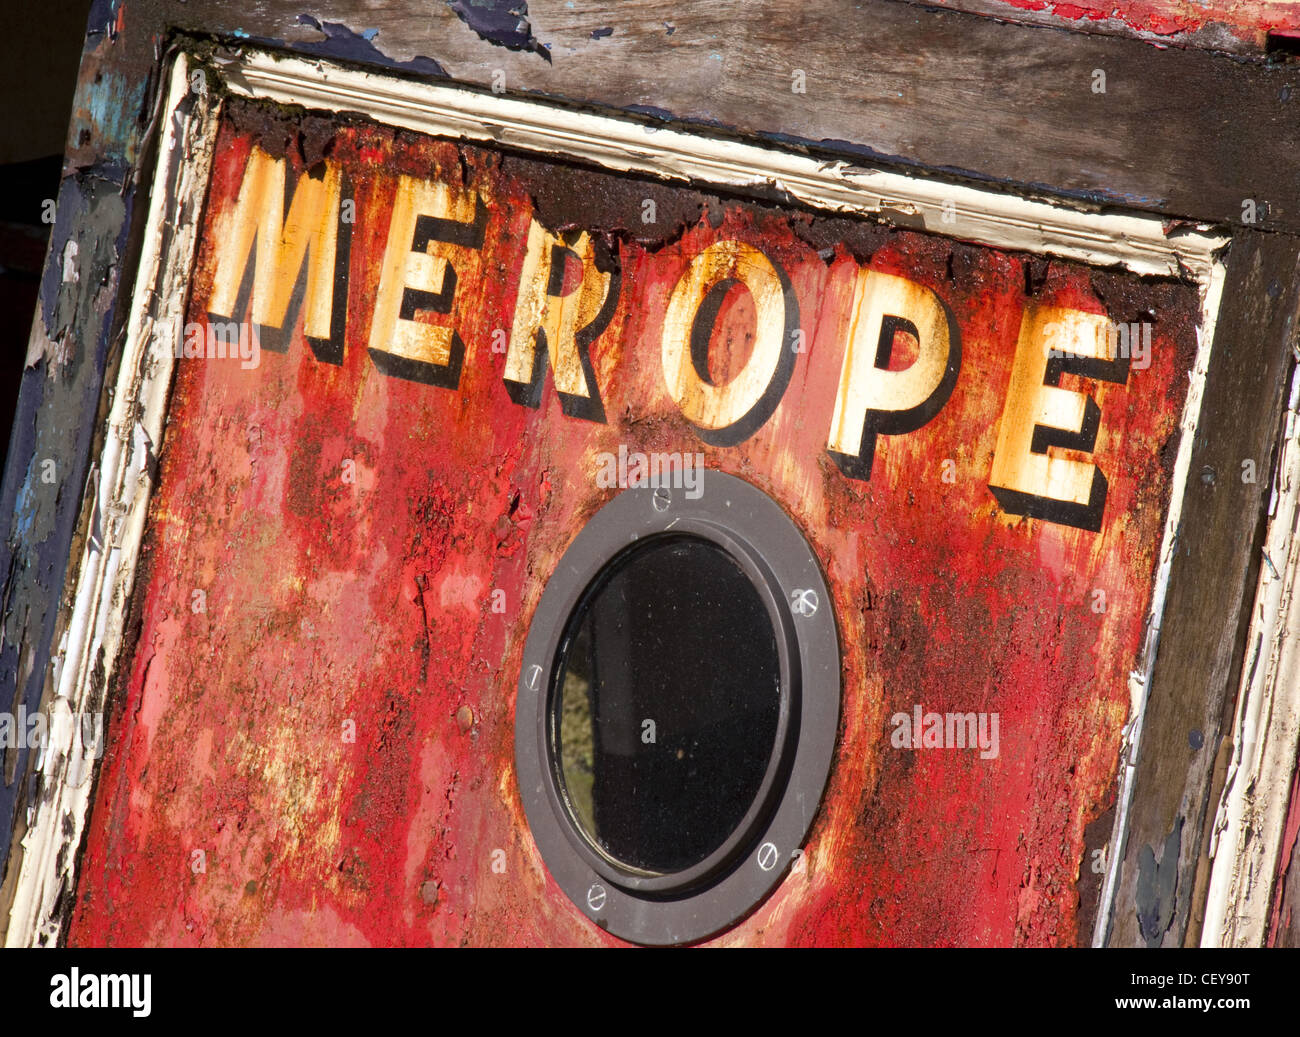 Merope,decaying,British,canal,boat,red,Ellesmere,Port,Cheshire,Great,Britain,British,Bridgewater,canal,museum,England,UK,United,Kingdom,interesting,decayed,disrepair,gotonysmith,Buy Pictures of,Buy Images Of